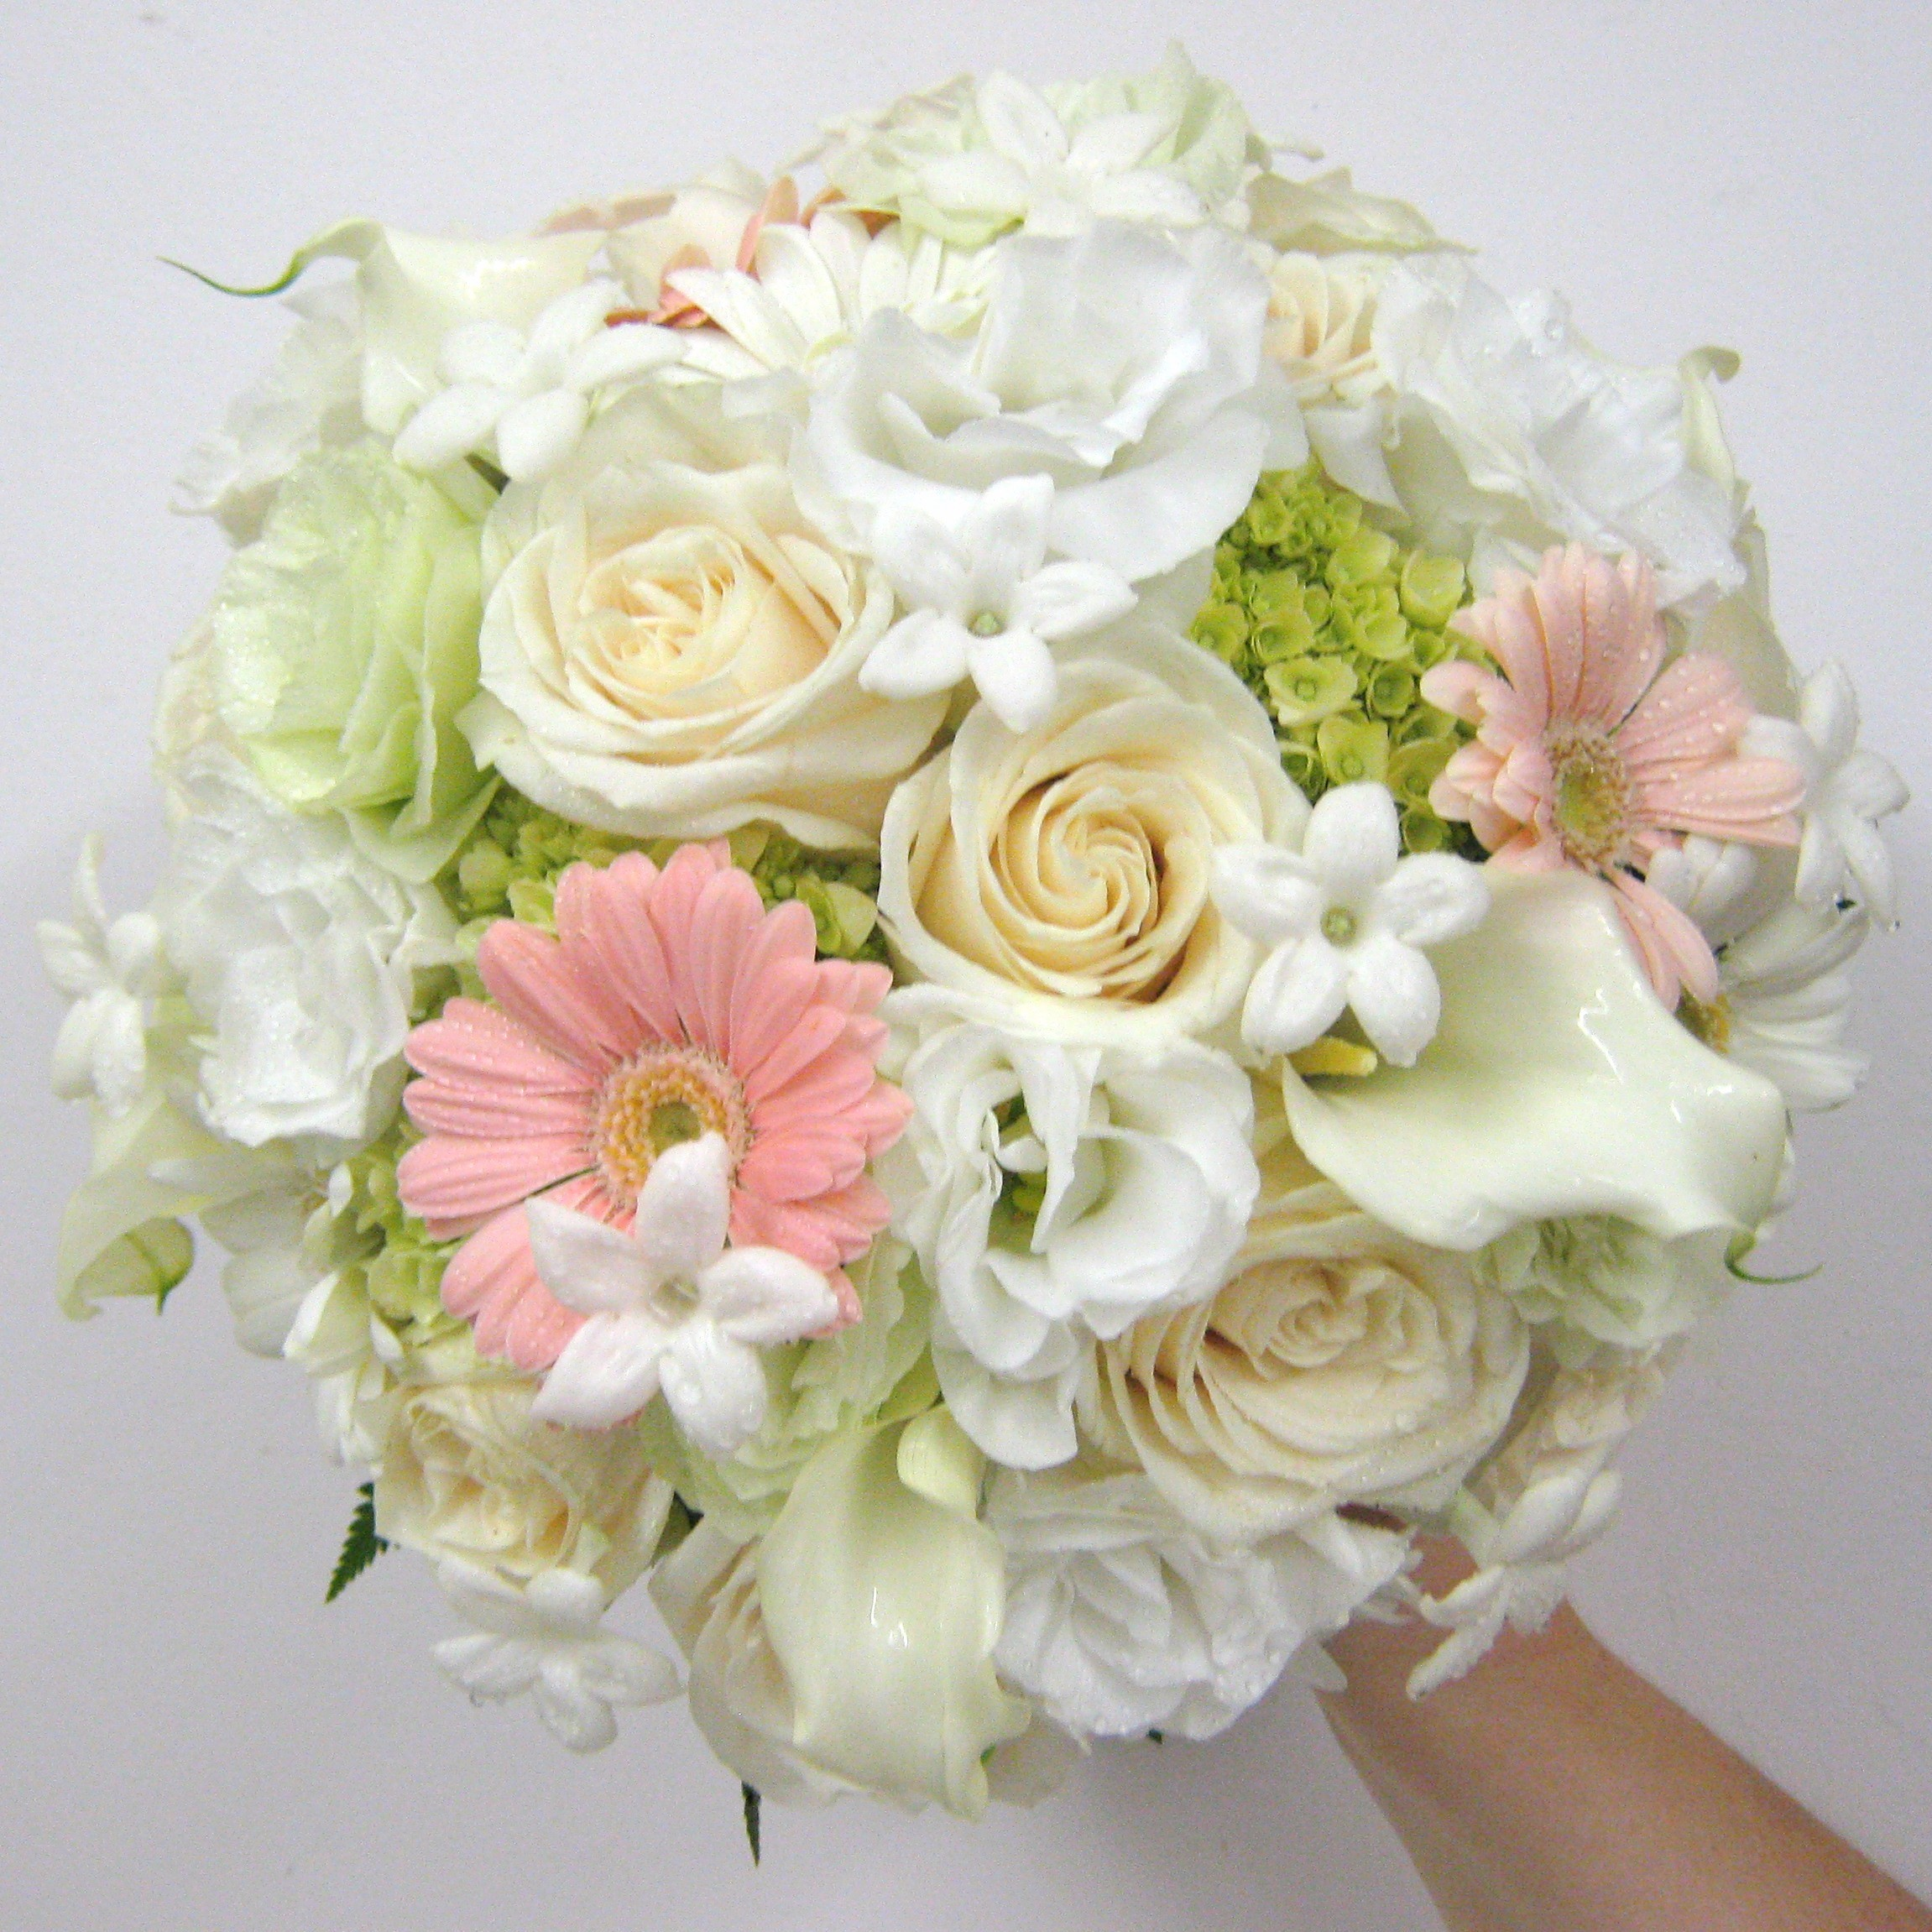 Designer Wedding Flowers: Buffalo Wedding & Event Flowers By